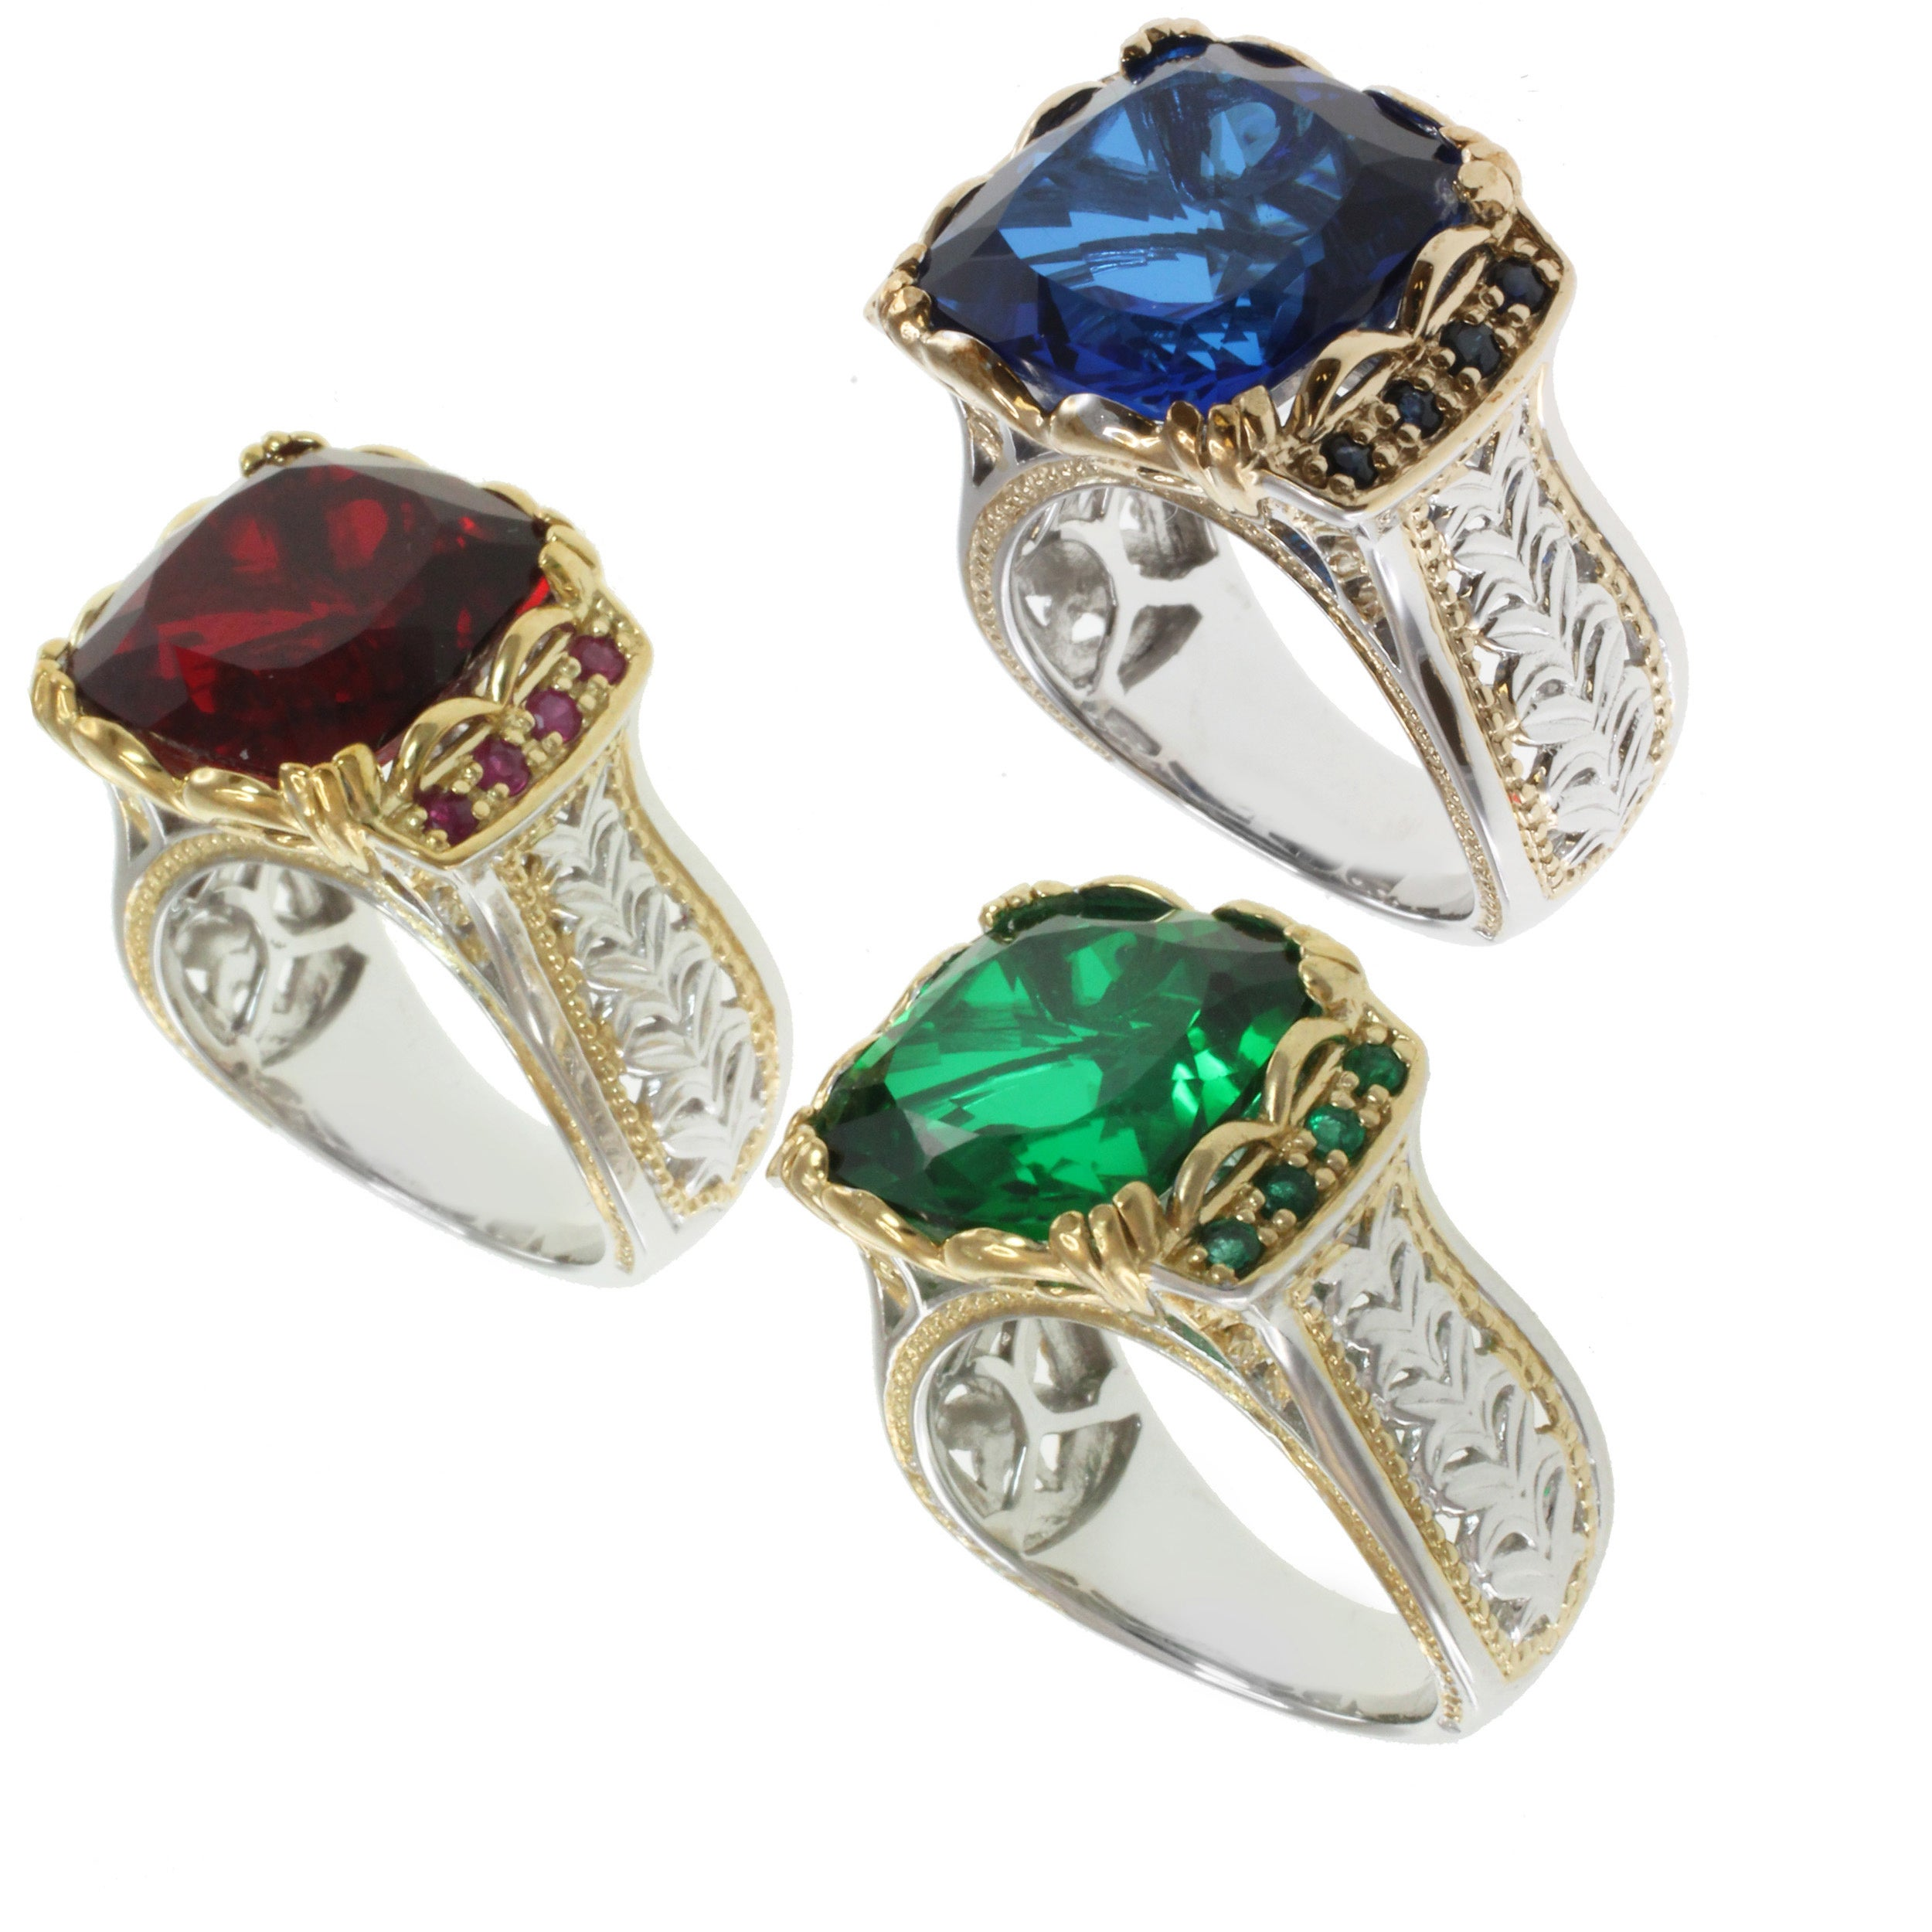 rings costagli ring shape products an paolo indicolite tourmaline buy gold valentina emeral kite white